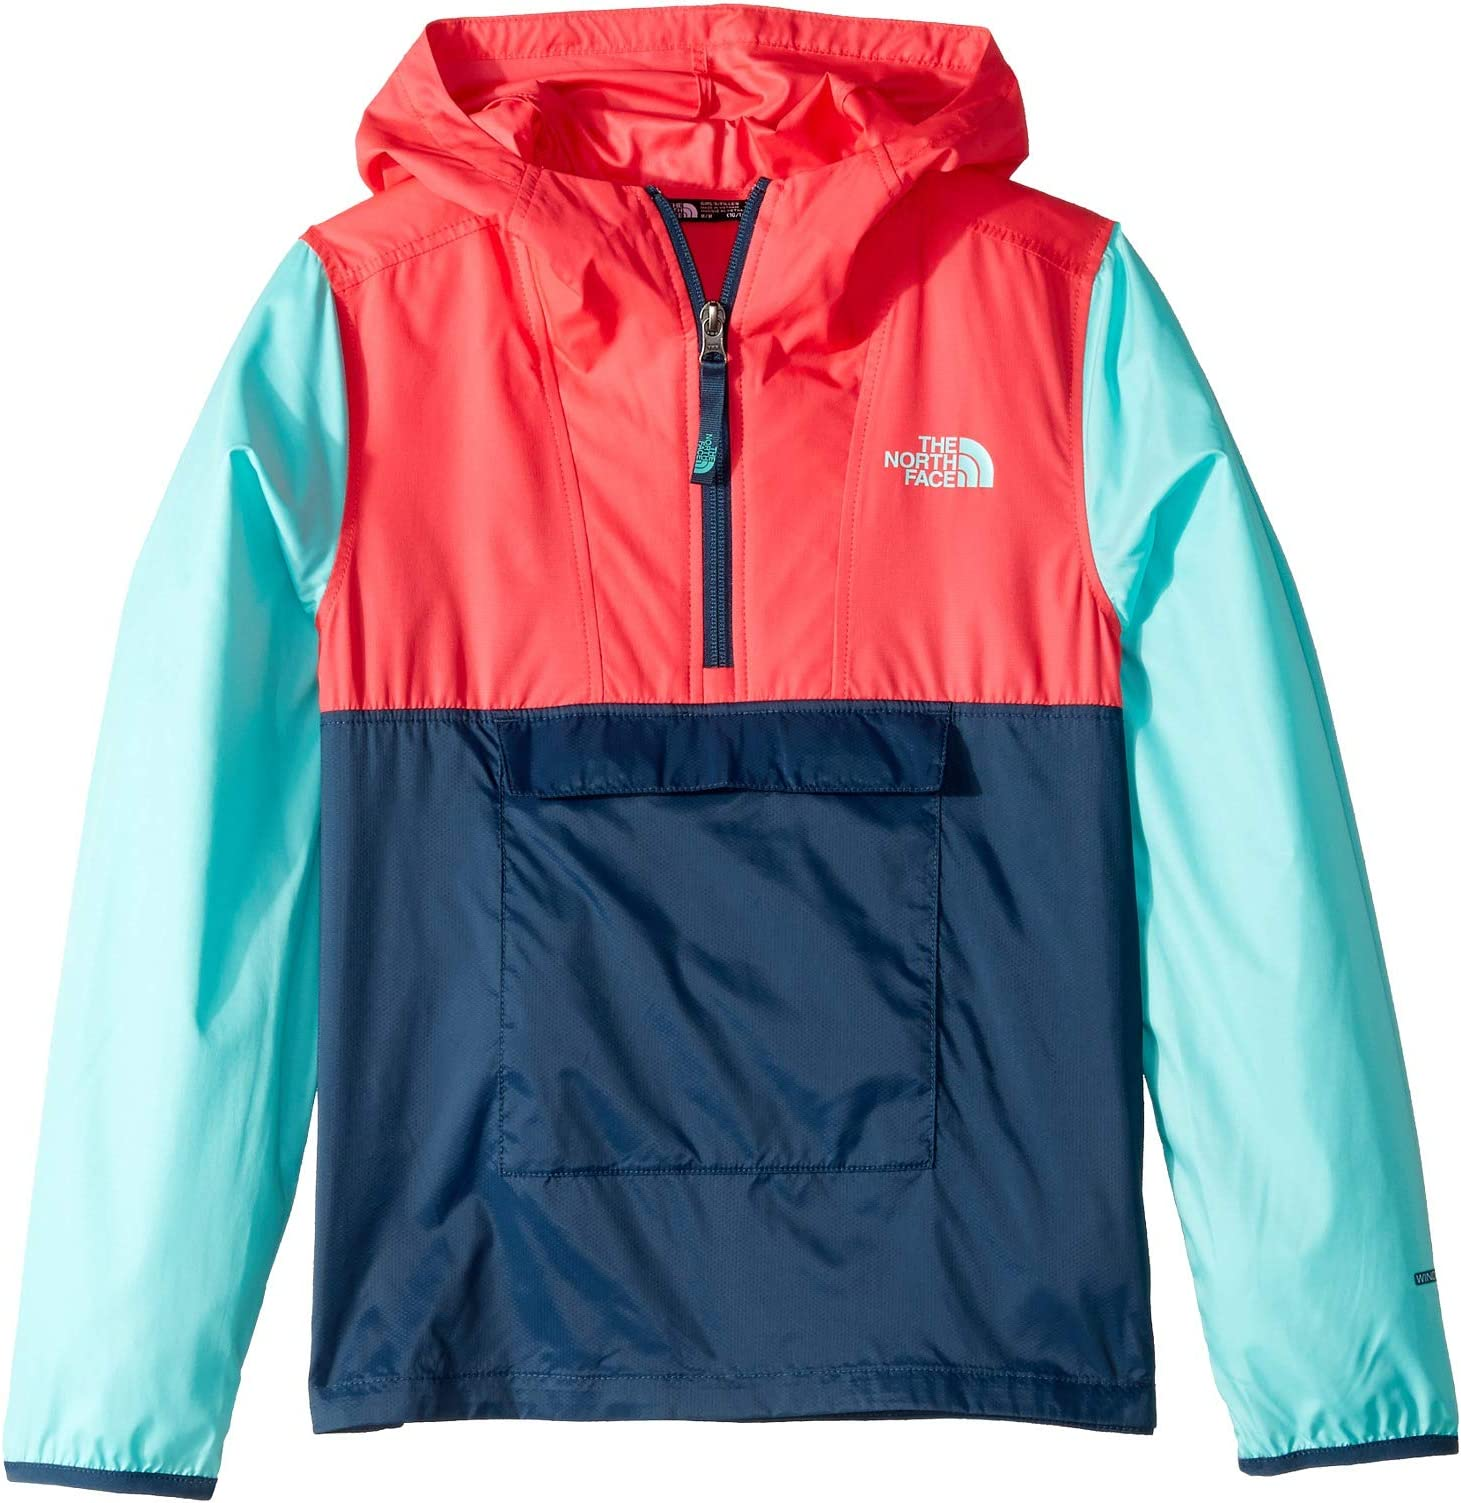 a2793b05973 The North Face Outerwear